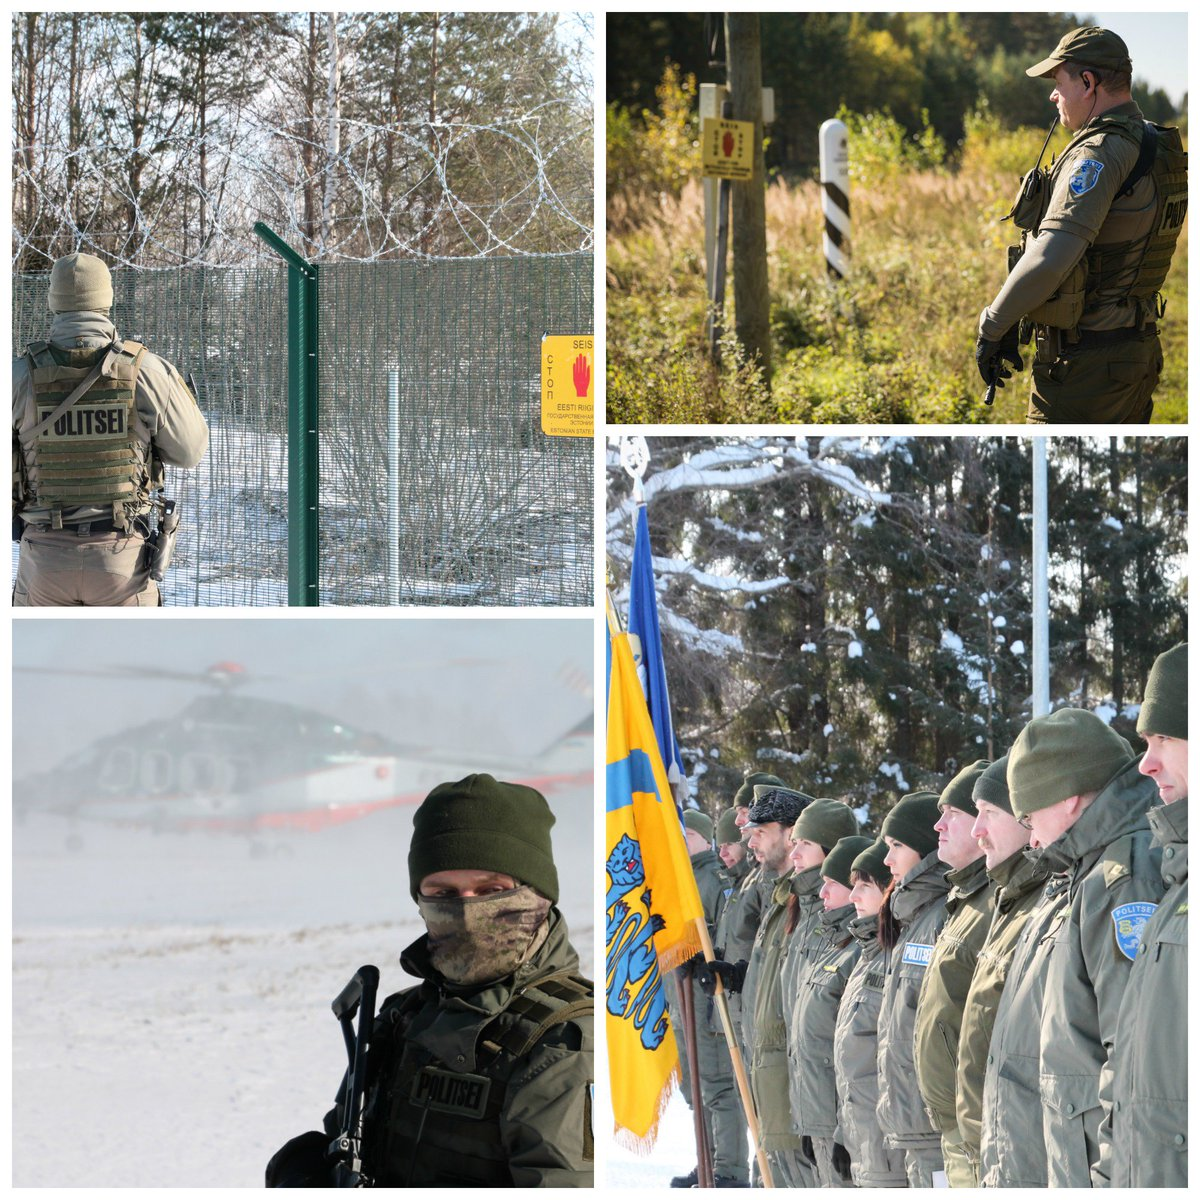 562a62b4c65 Methods and equipment are much better than in the beginning, but the goal  is same. Border Guard officer is the eyes and ears of the country, ...